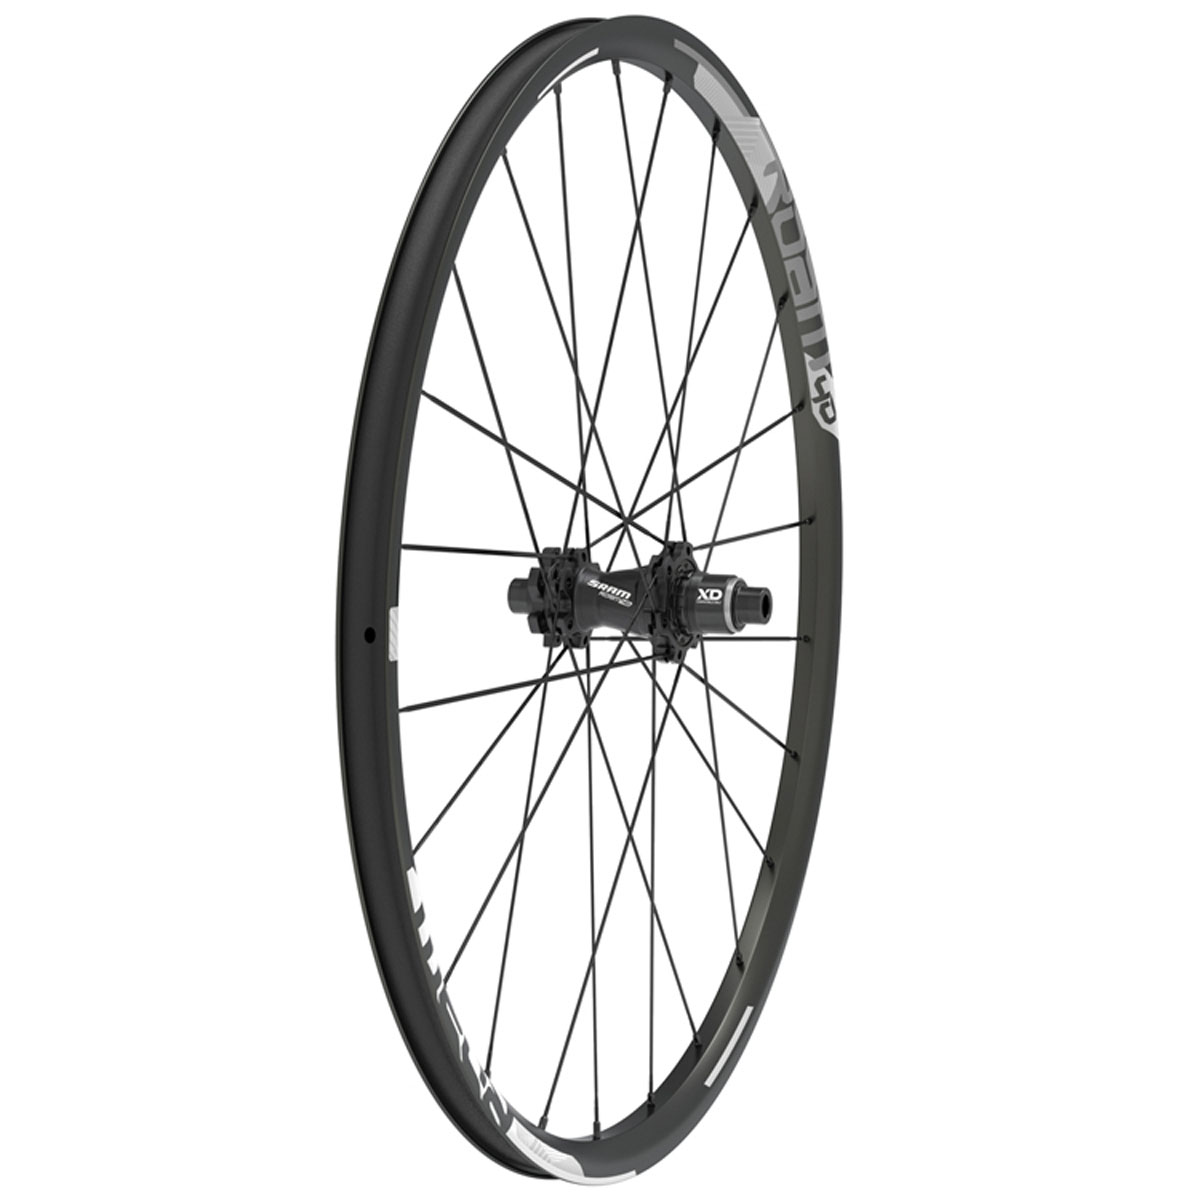 SRAM Roam 40 27.5 inch Rear UST Black/Silver Disc Bicycle Wheel - 00.1918.184.004